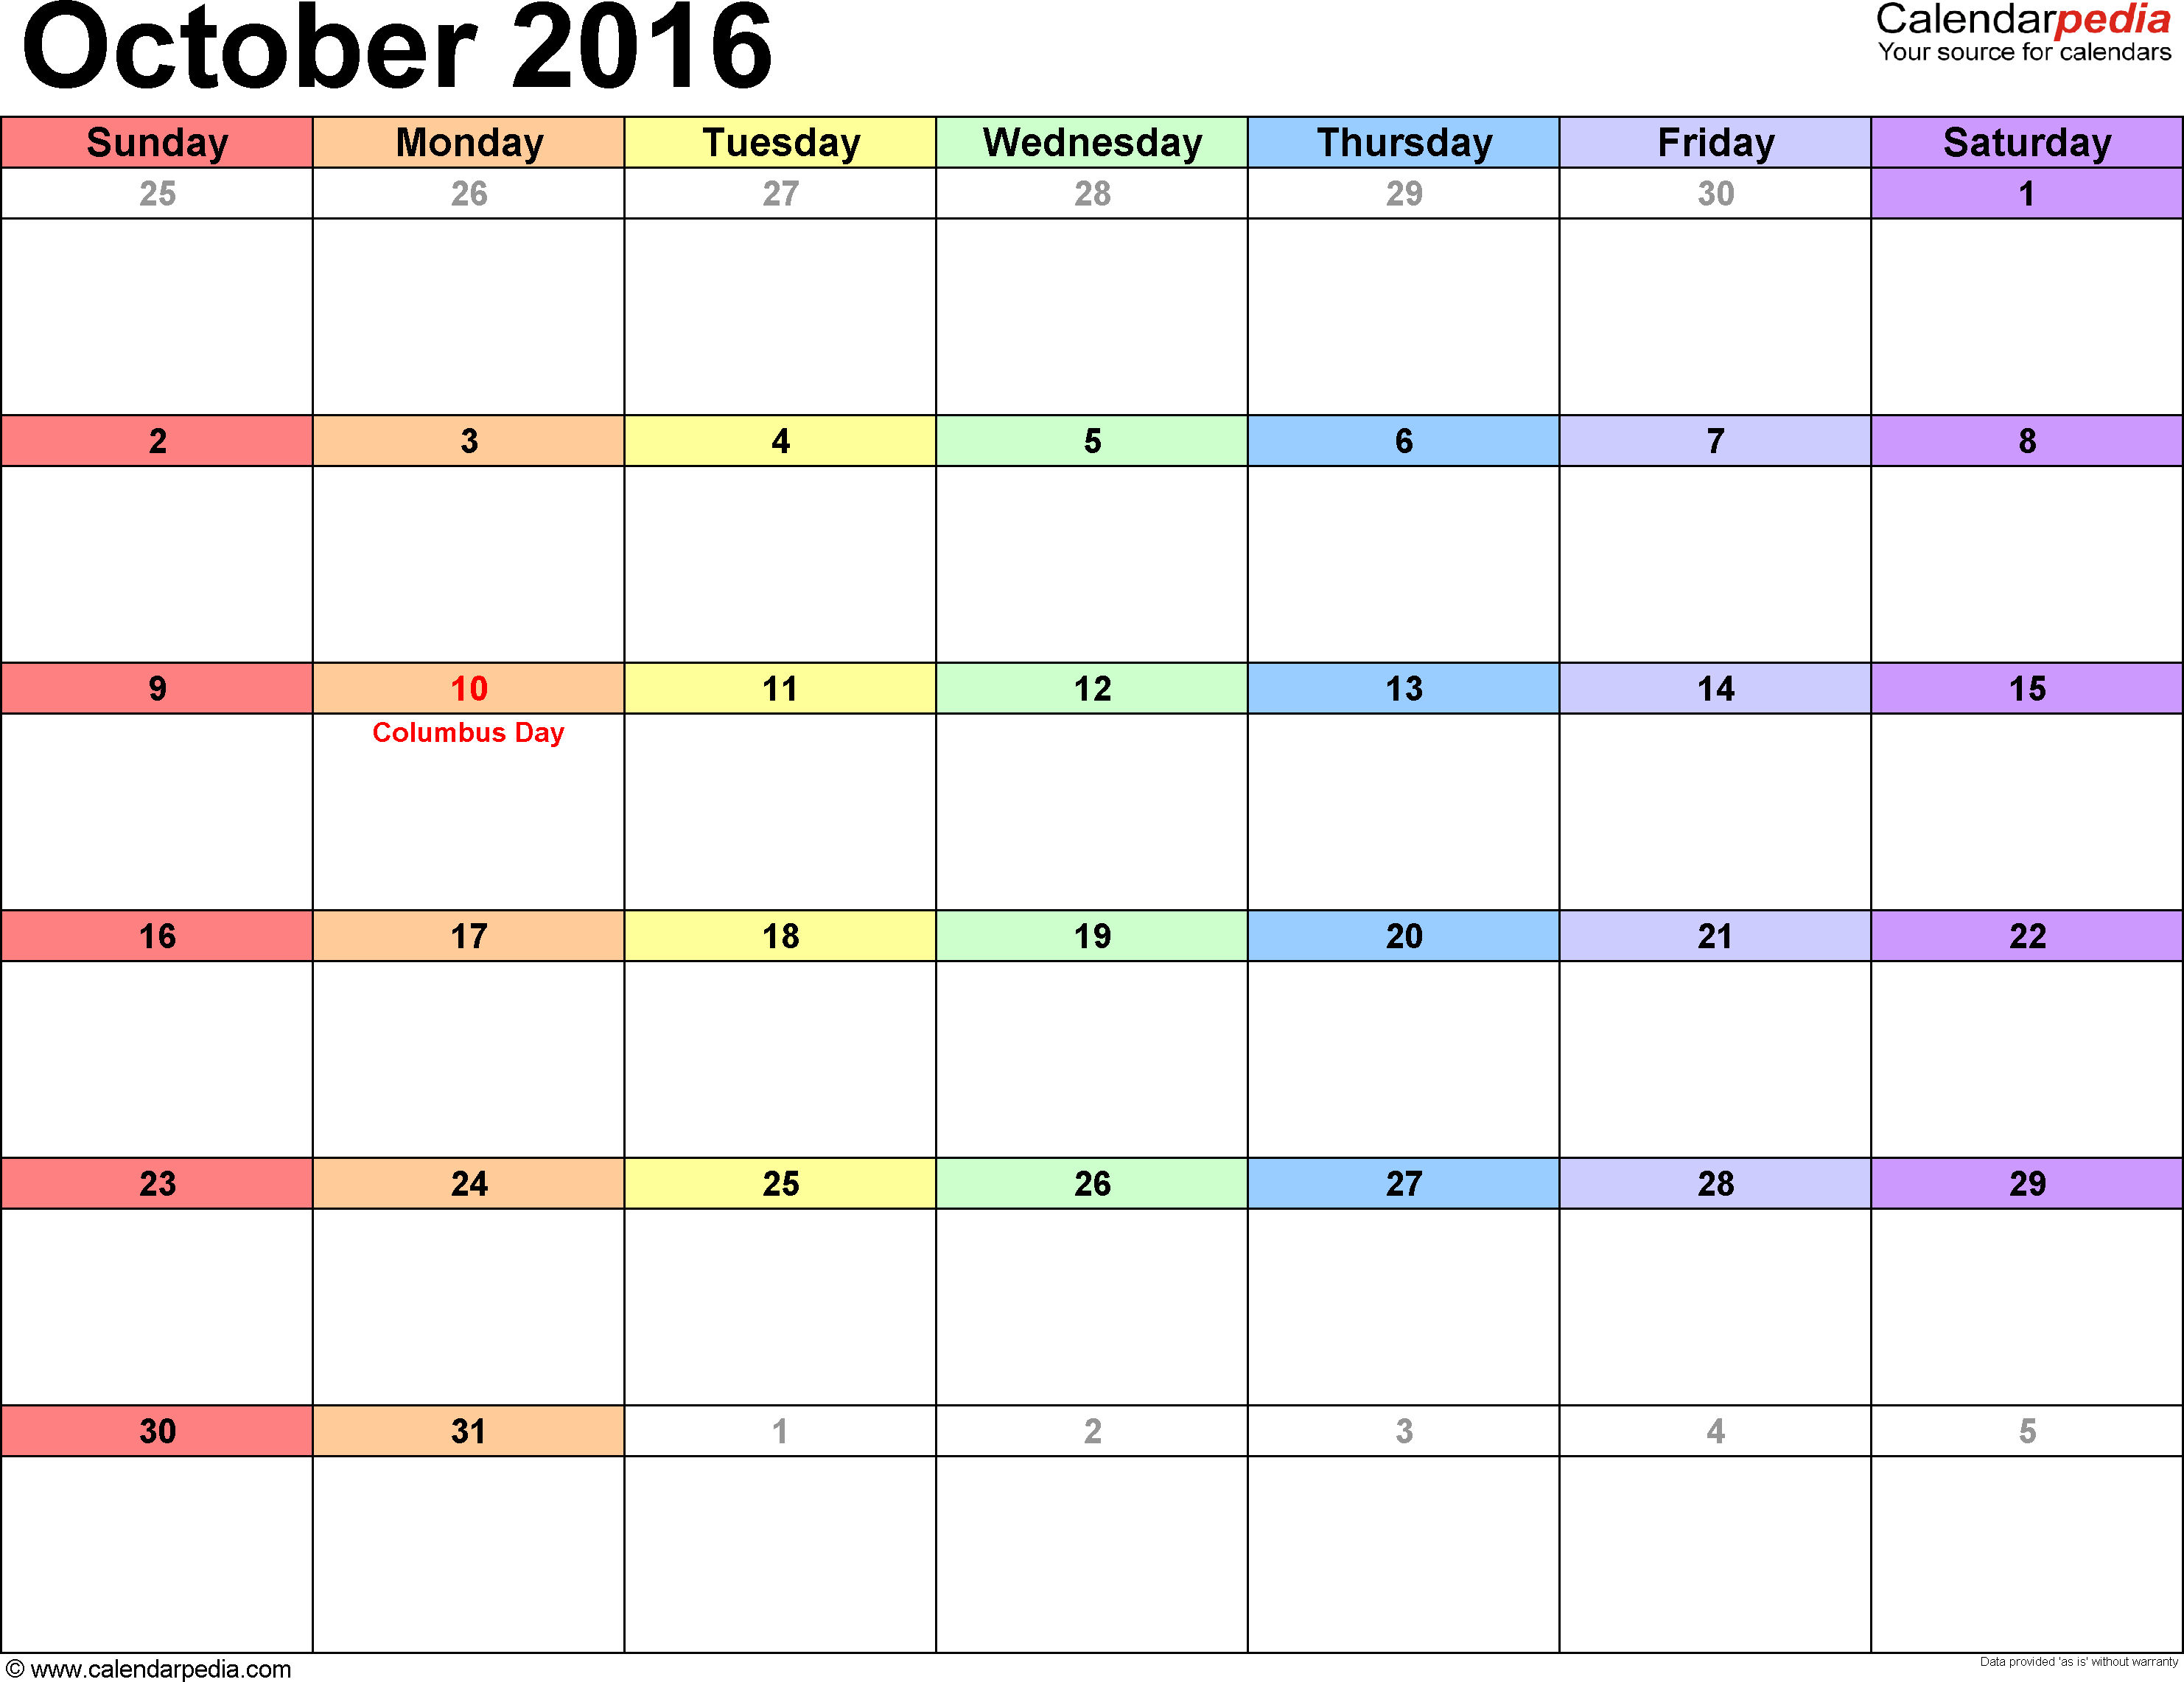 October 2016 calendar printable template